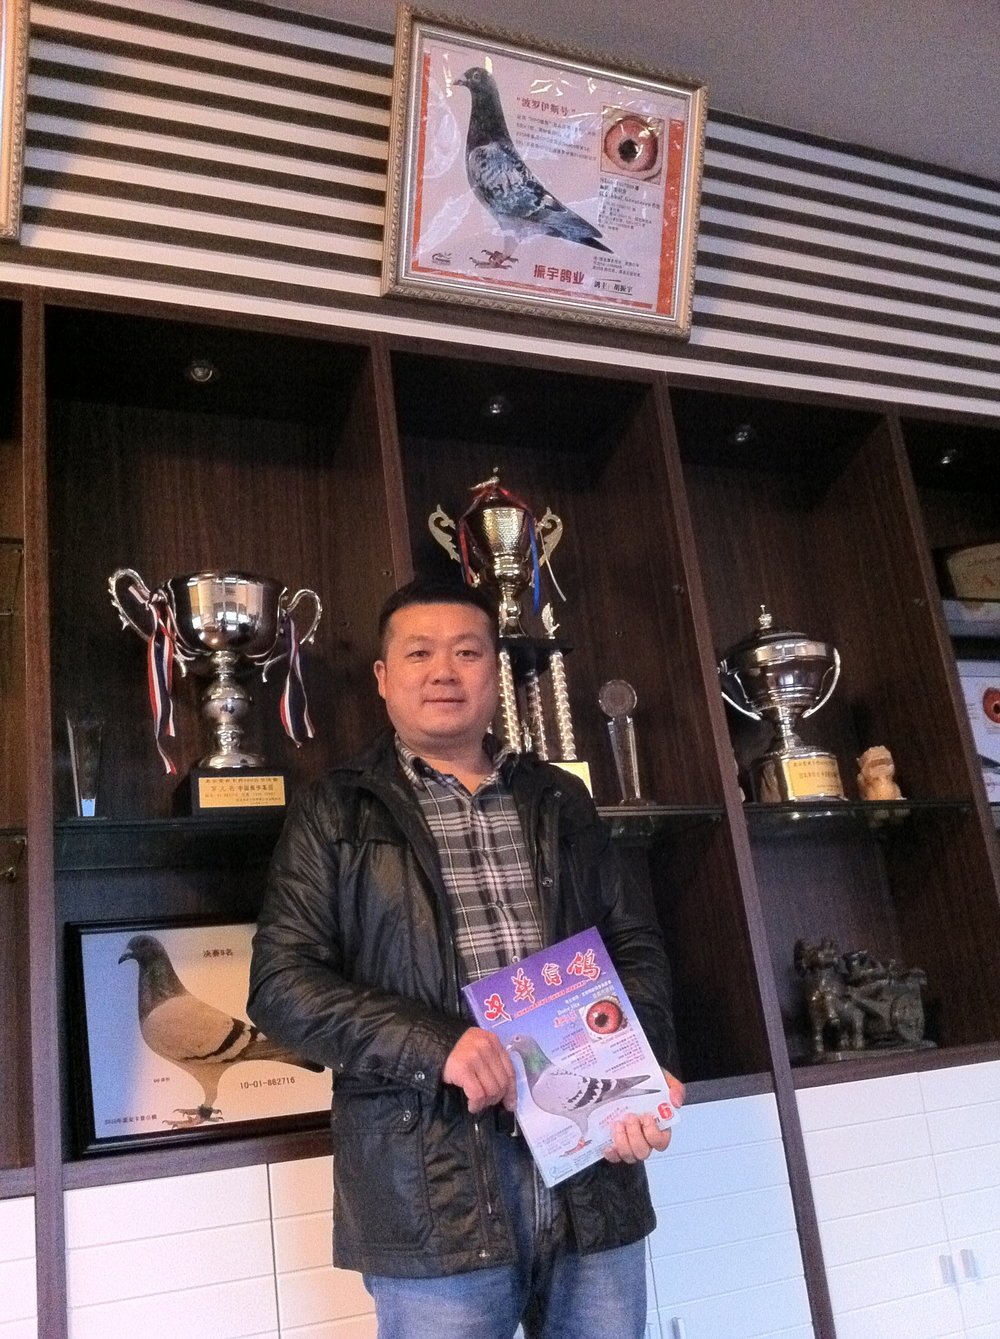 Hu Zhen Yu with pigeon Dolce Vita on the cover of the magazine, which he had just bought for a record amount. Photo: (C) Remko Tanis